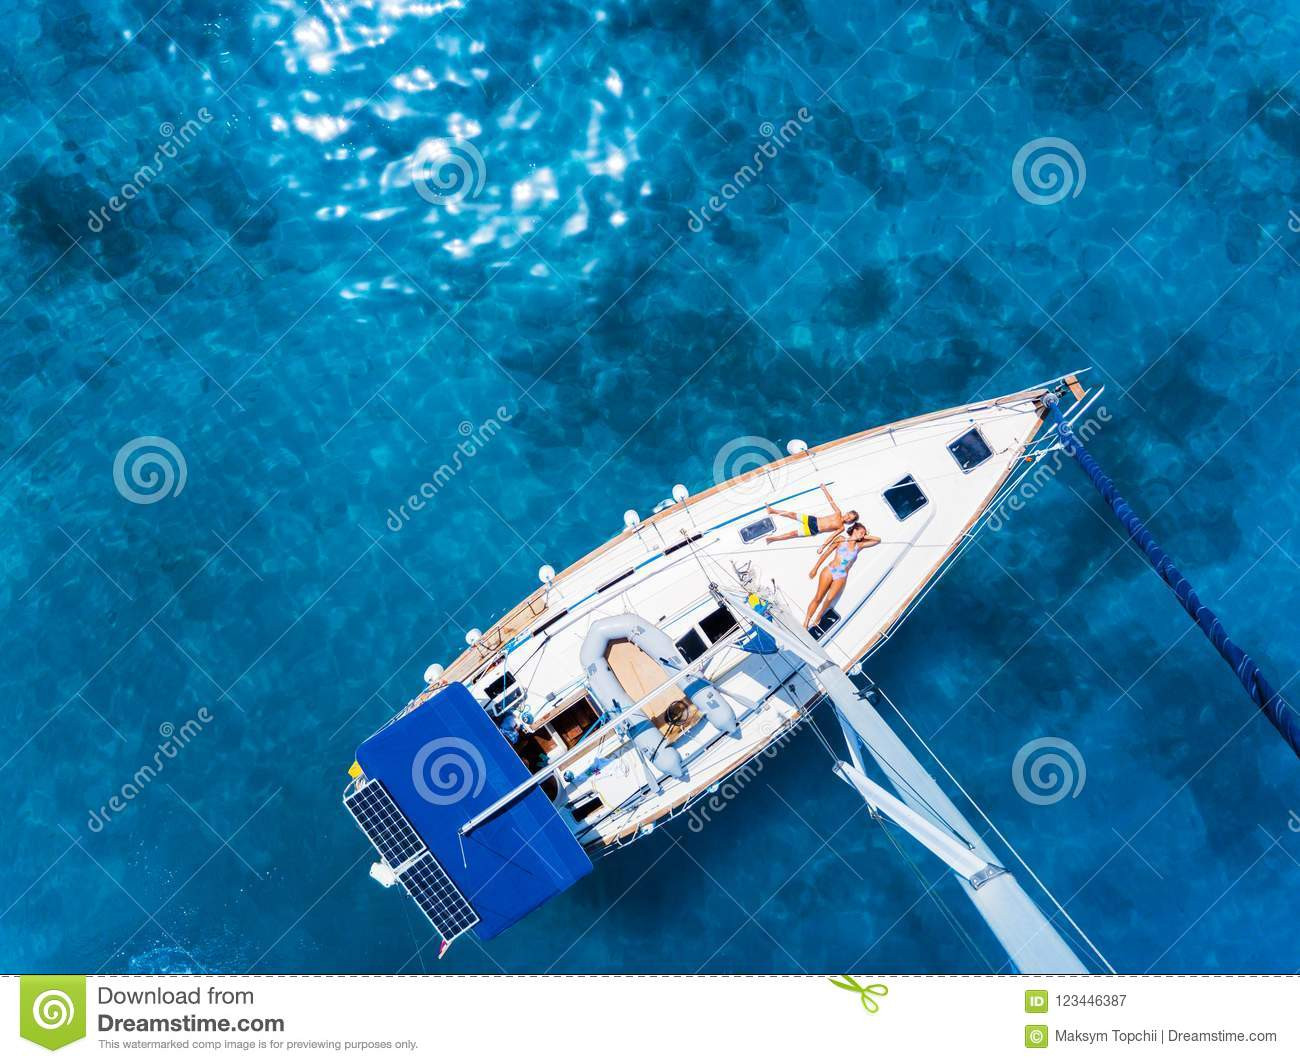 Download Aerial View To Yacht In Deep Blue Sea Drone Photography Stock Image